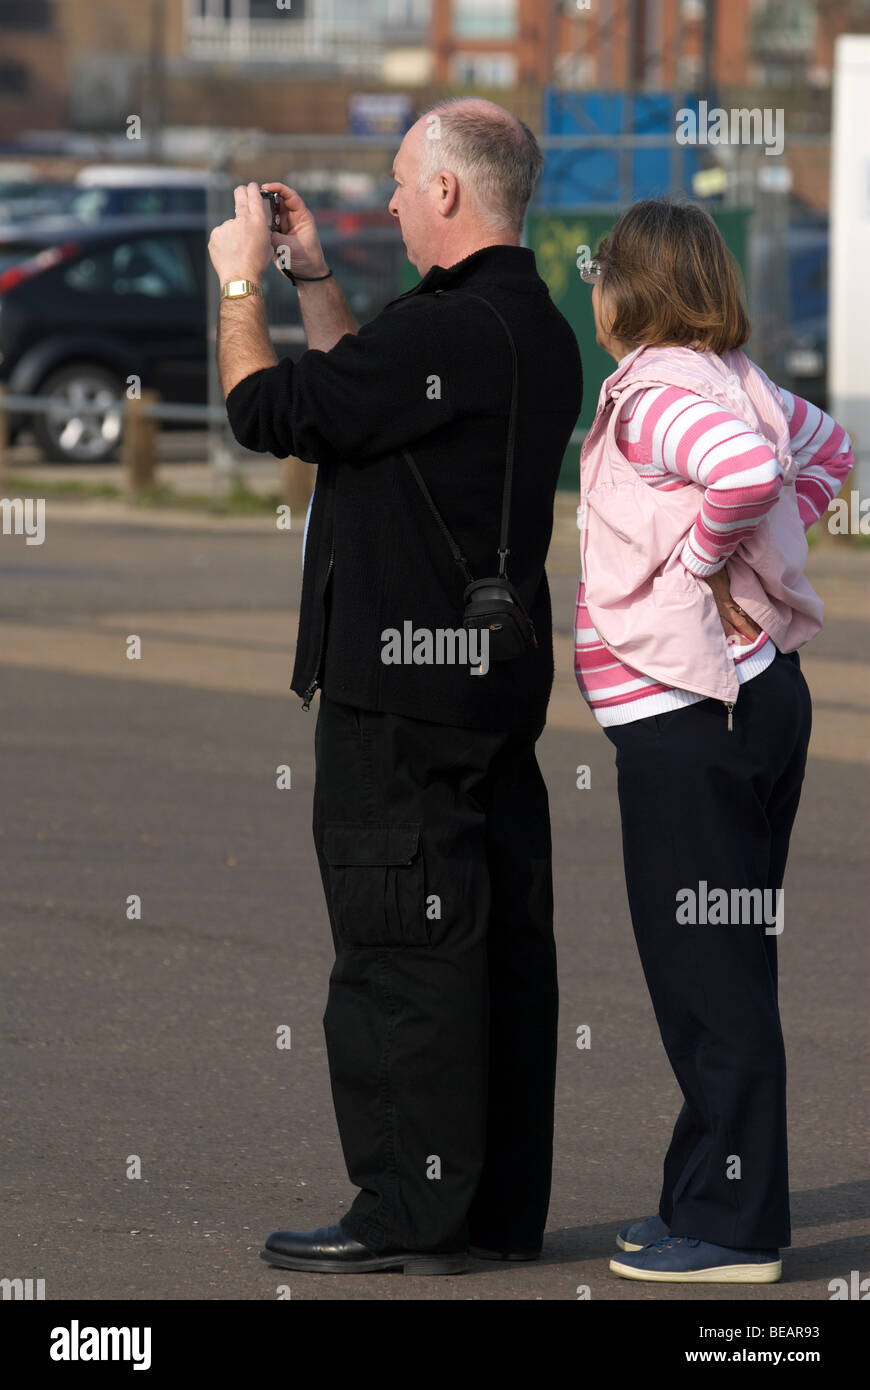 Sightseers photographing the new developments on Ipswich waterfront, Suffolk, UK. - Stock Image